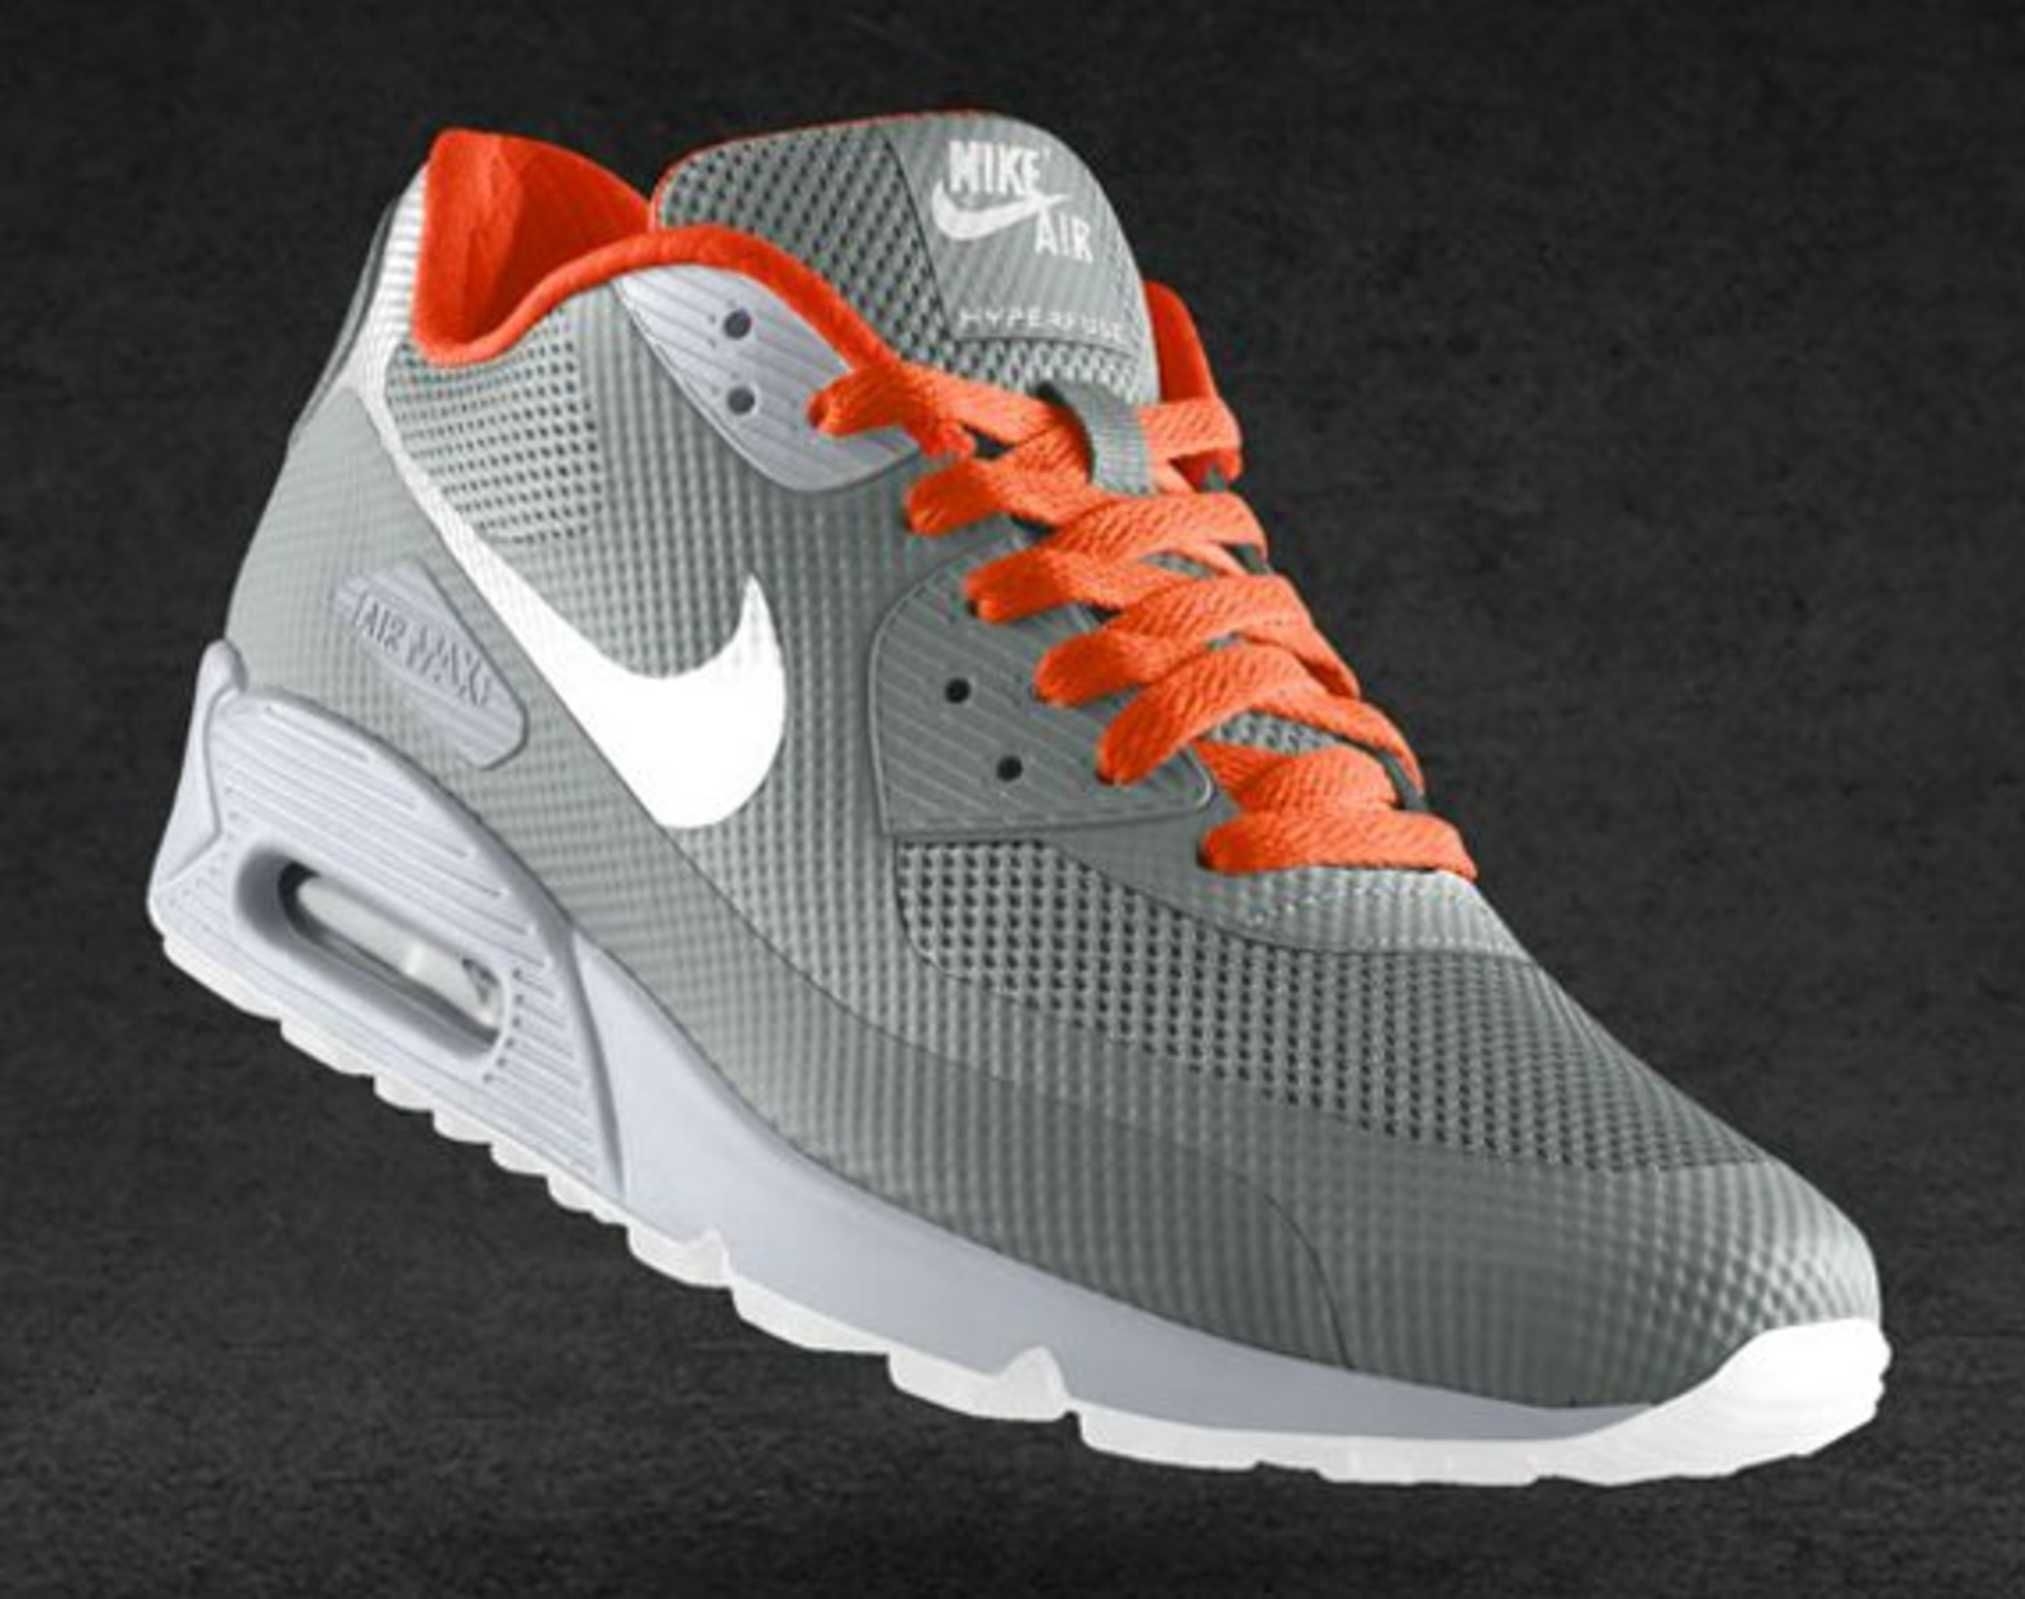 NIKEiD Air Max 90 Hyperfuse Design Options | Running shoes